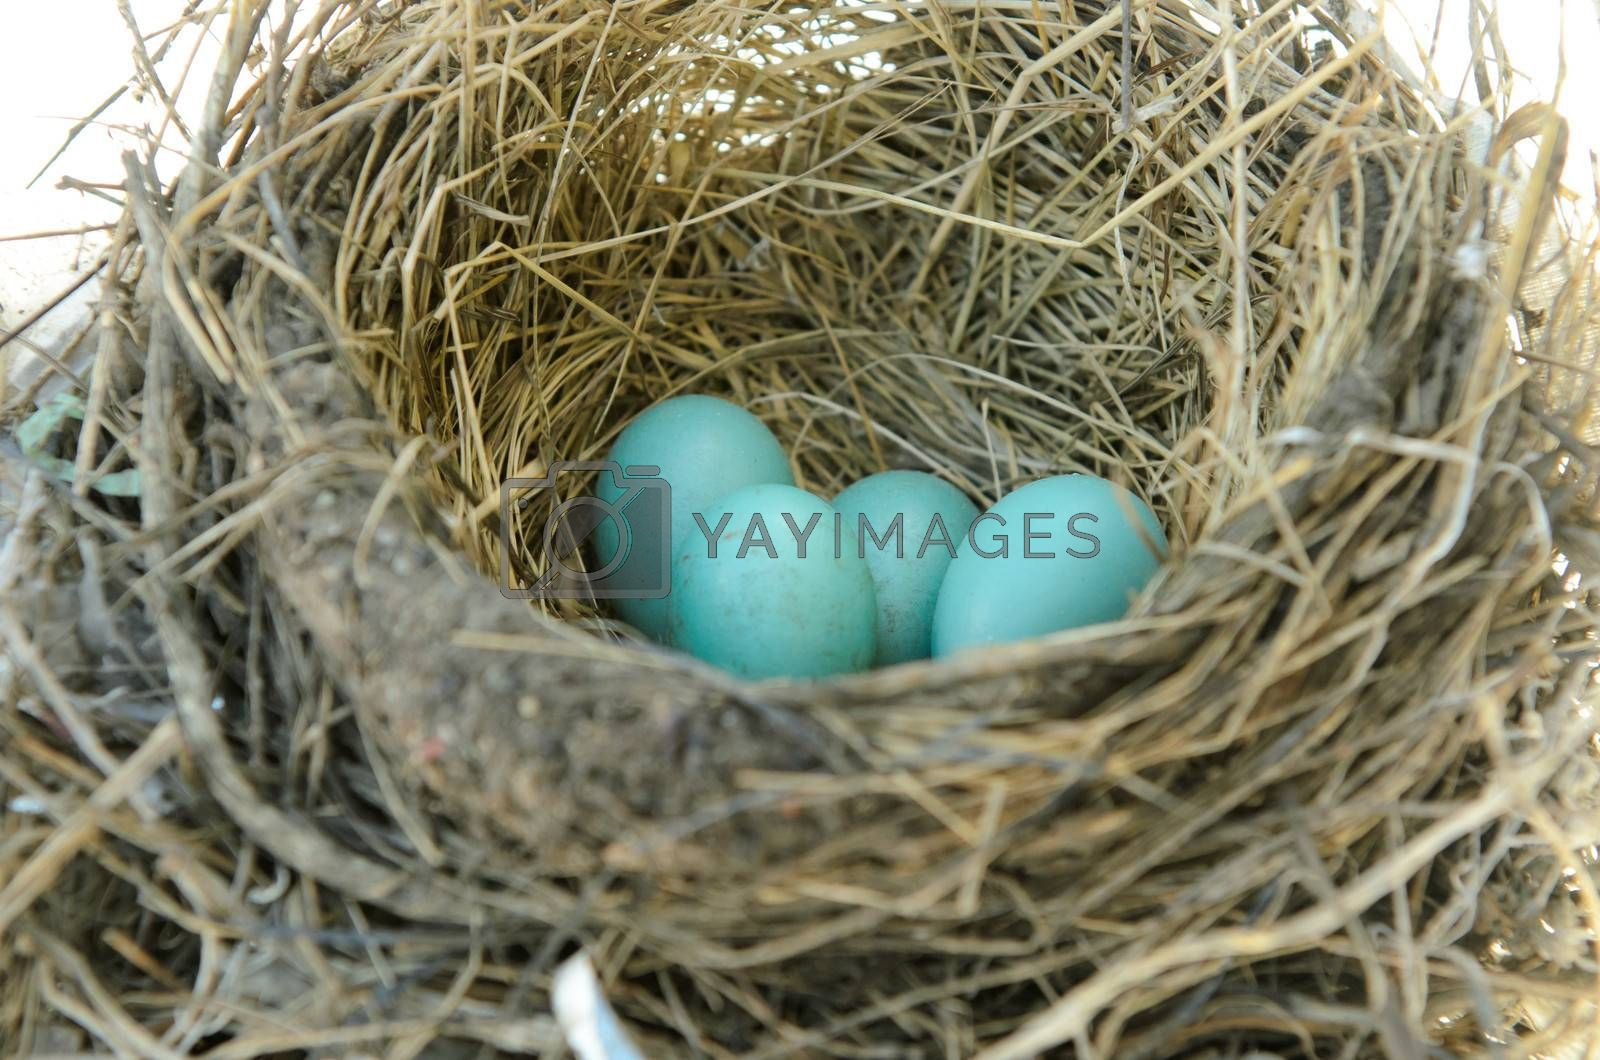 Robins nest with 4 eggs in it. Isolated on a white background.